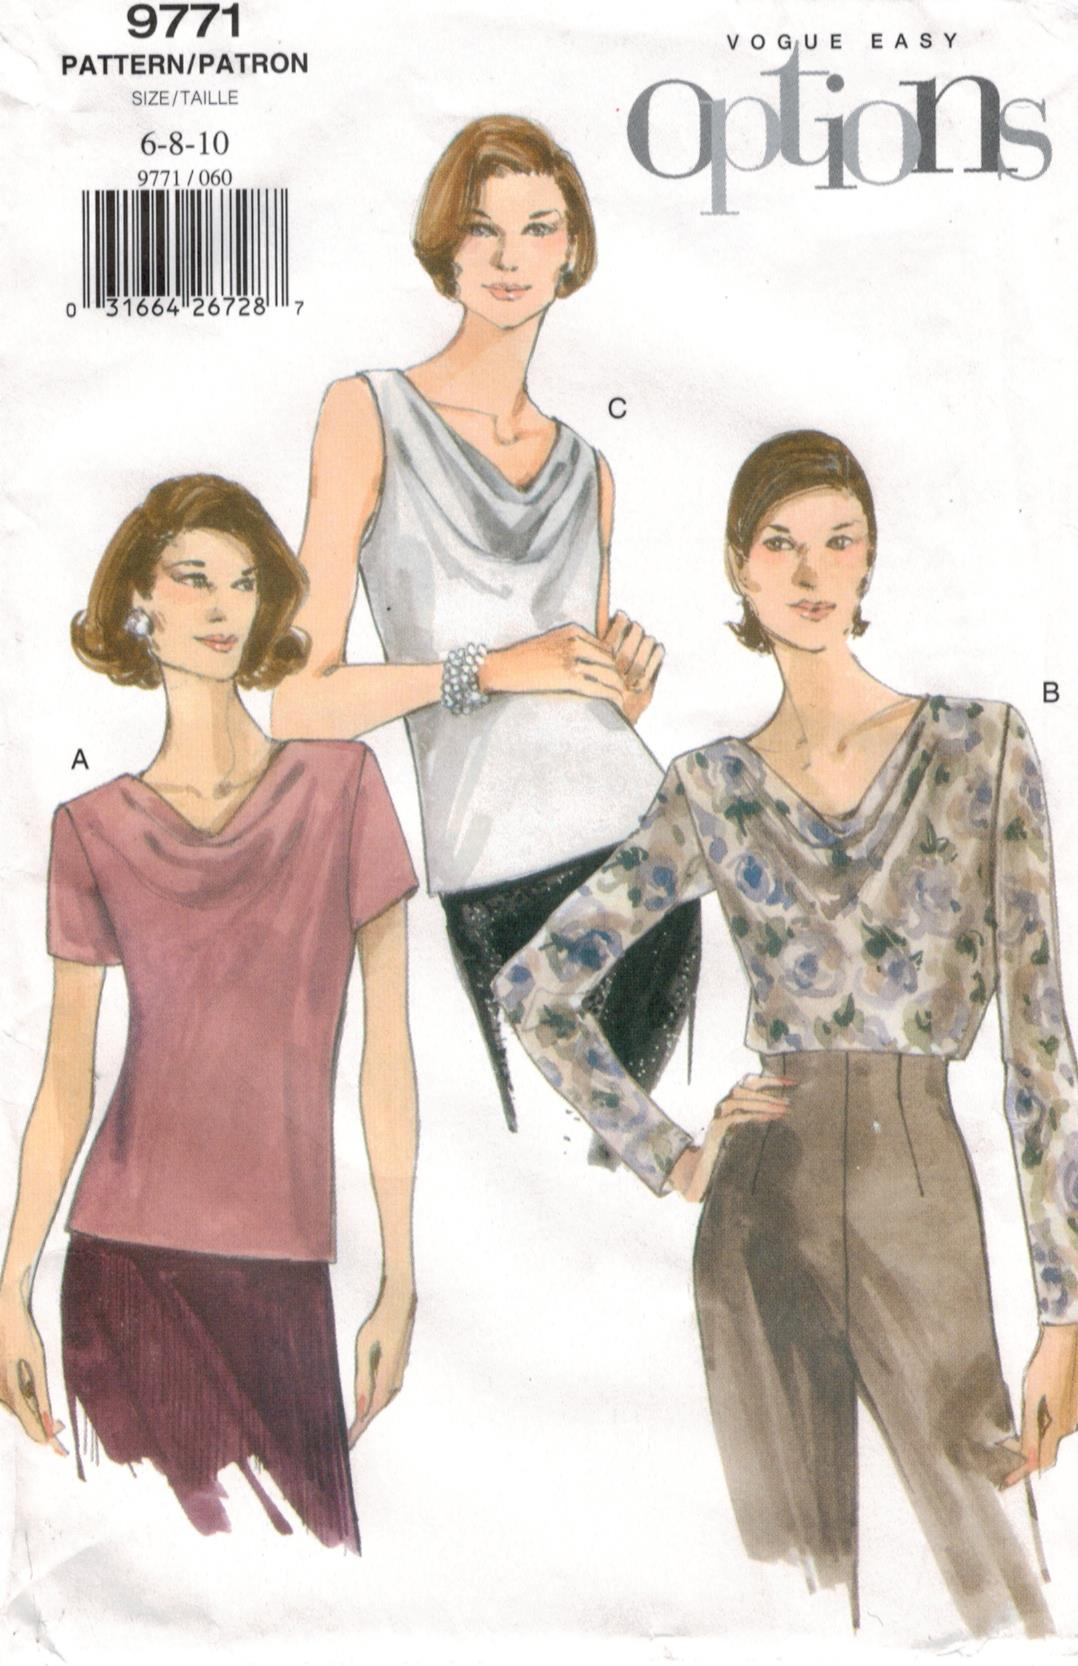 Vogue Pattern 12 Easy Options blouses and tops sizes 12, 12, 12 ...